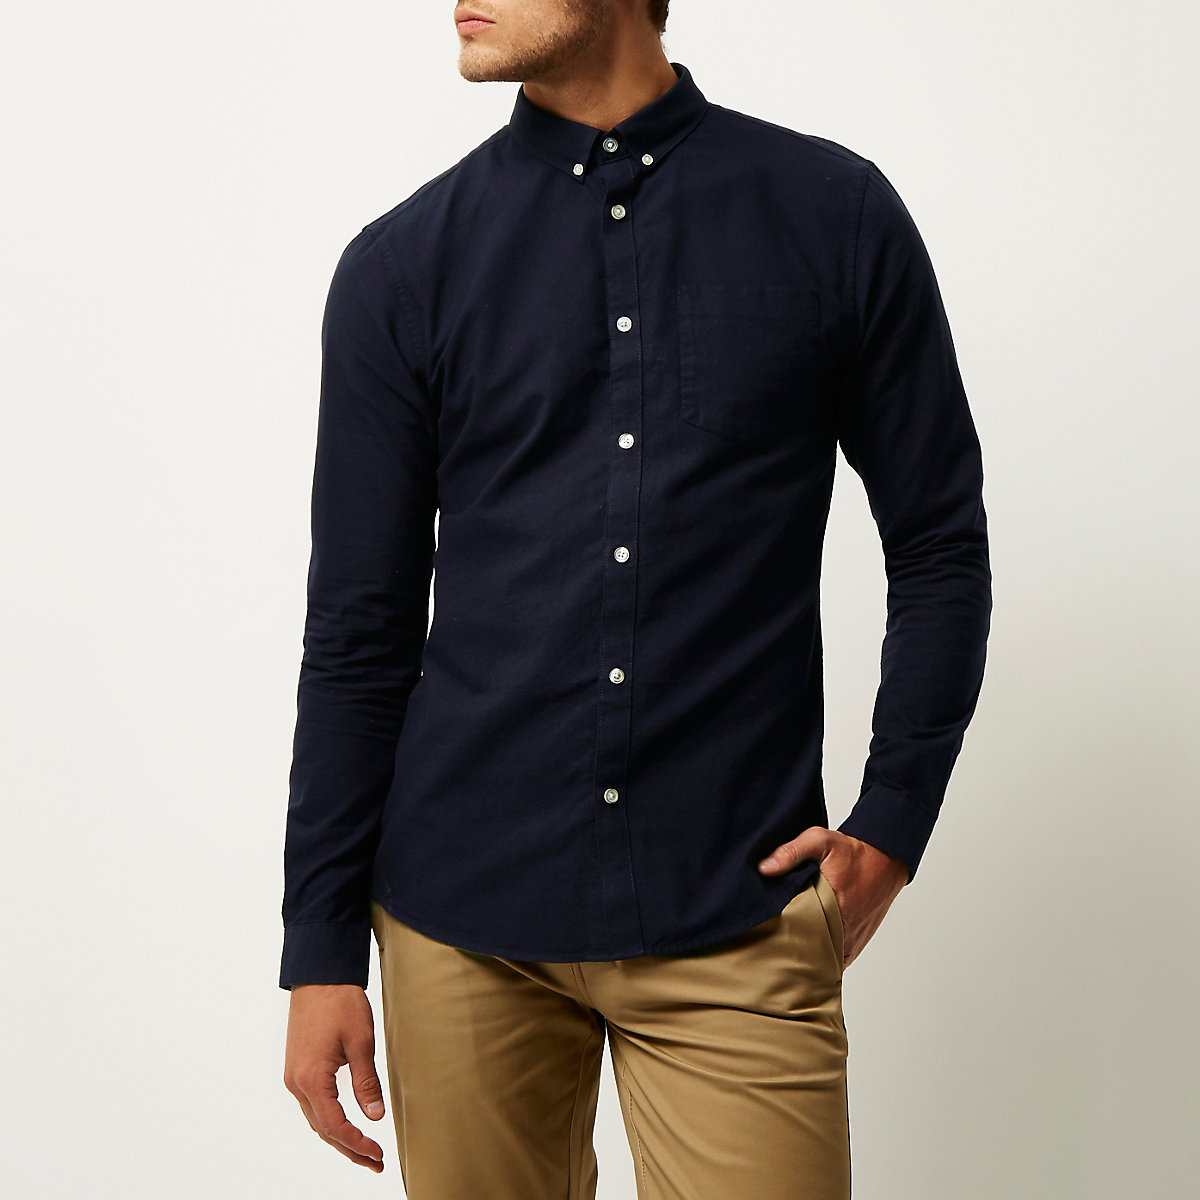 Navy slim fit long sleeve Oxford shirt